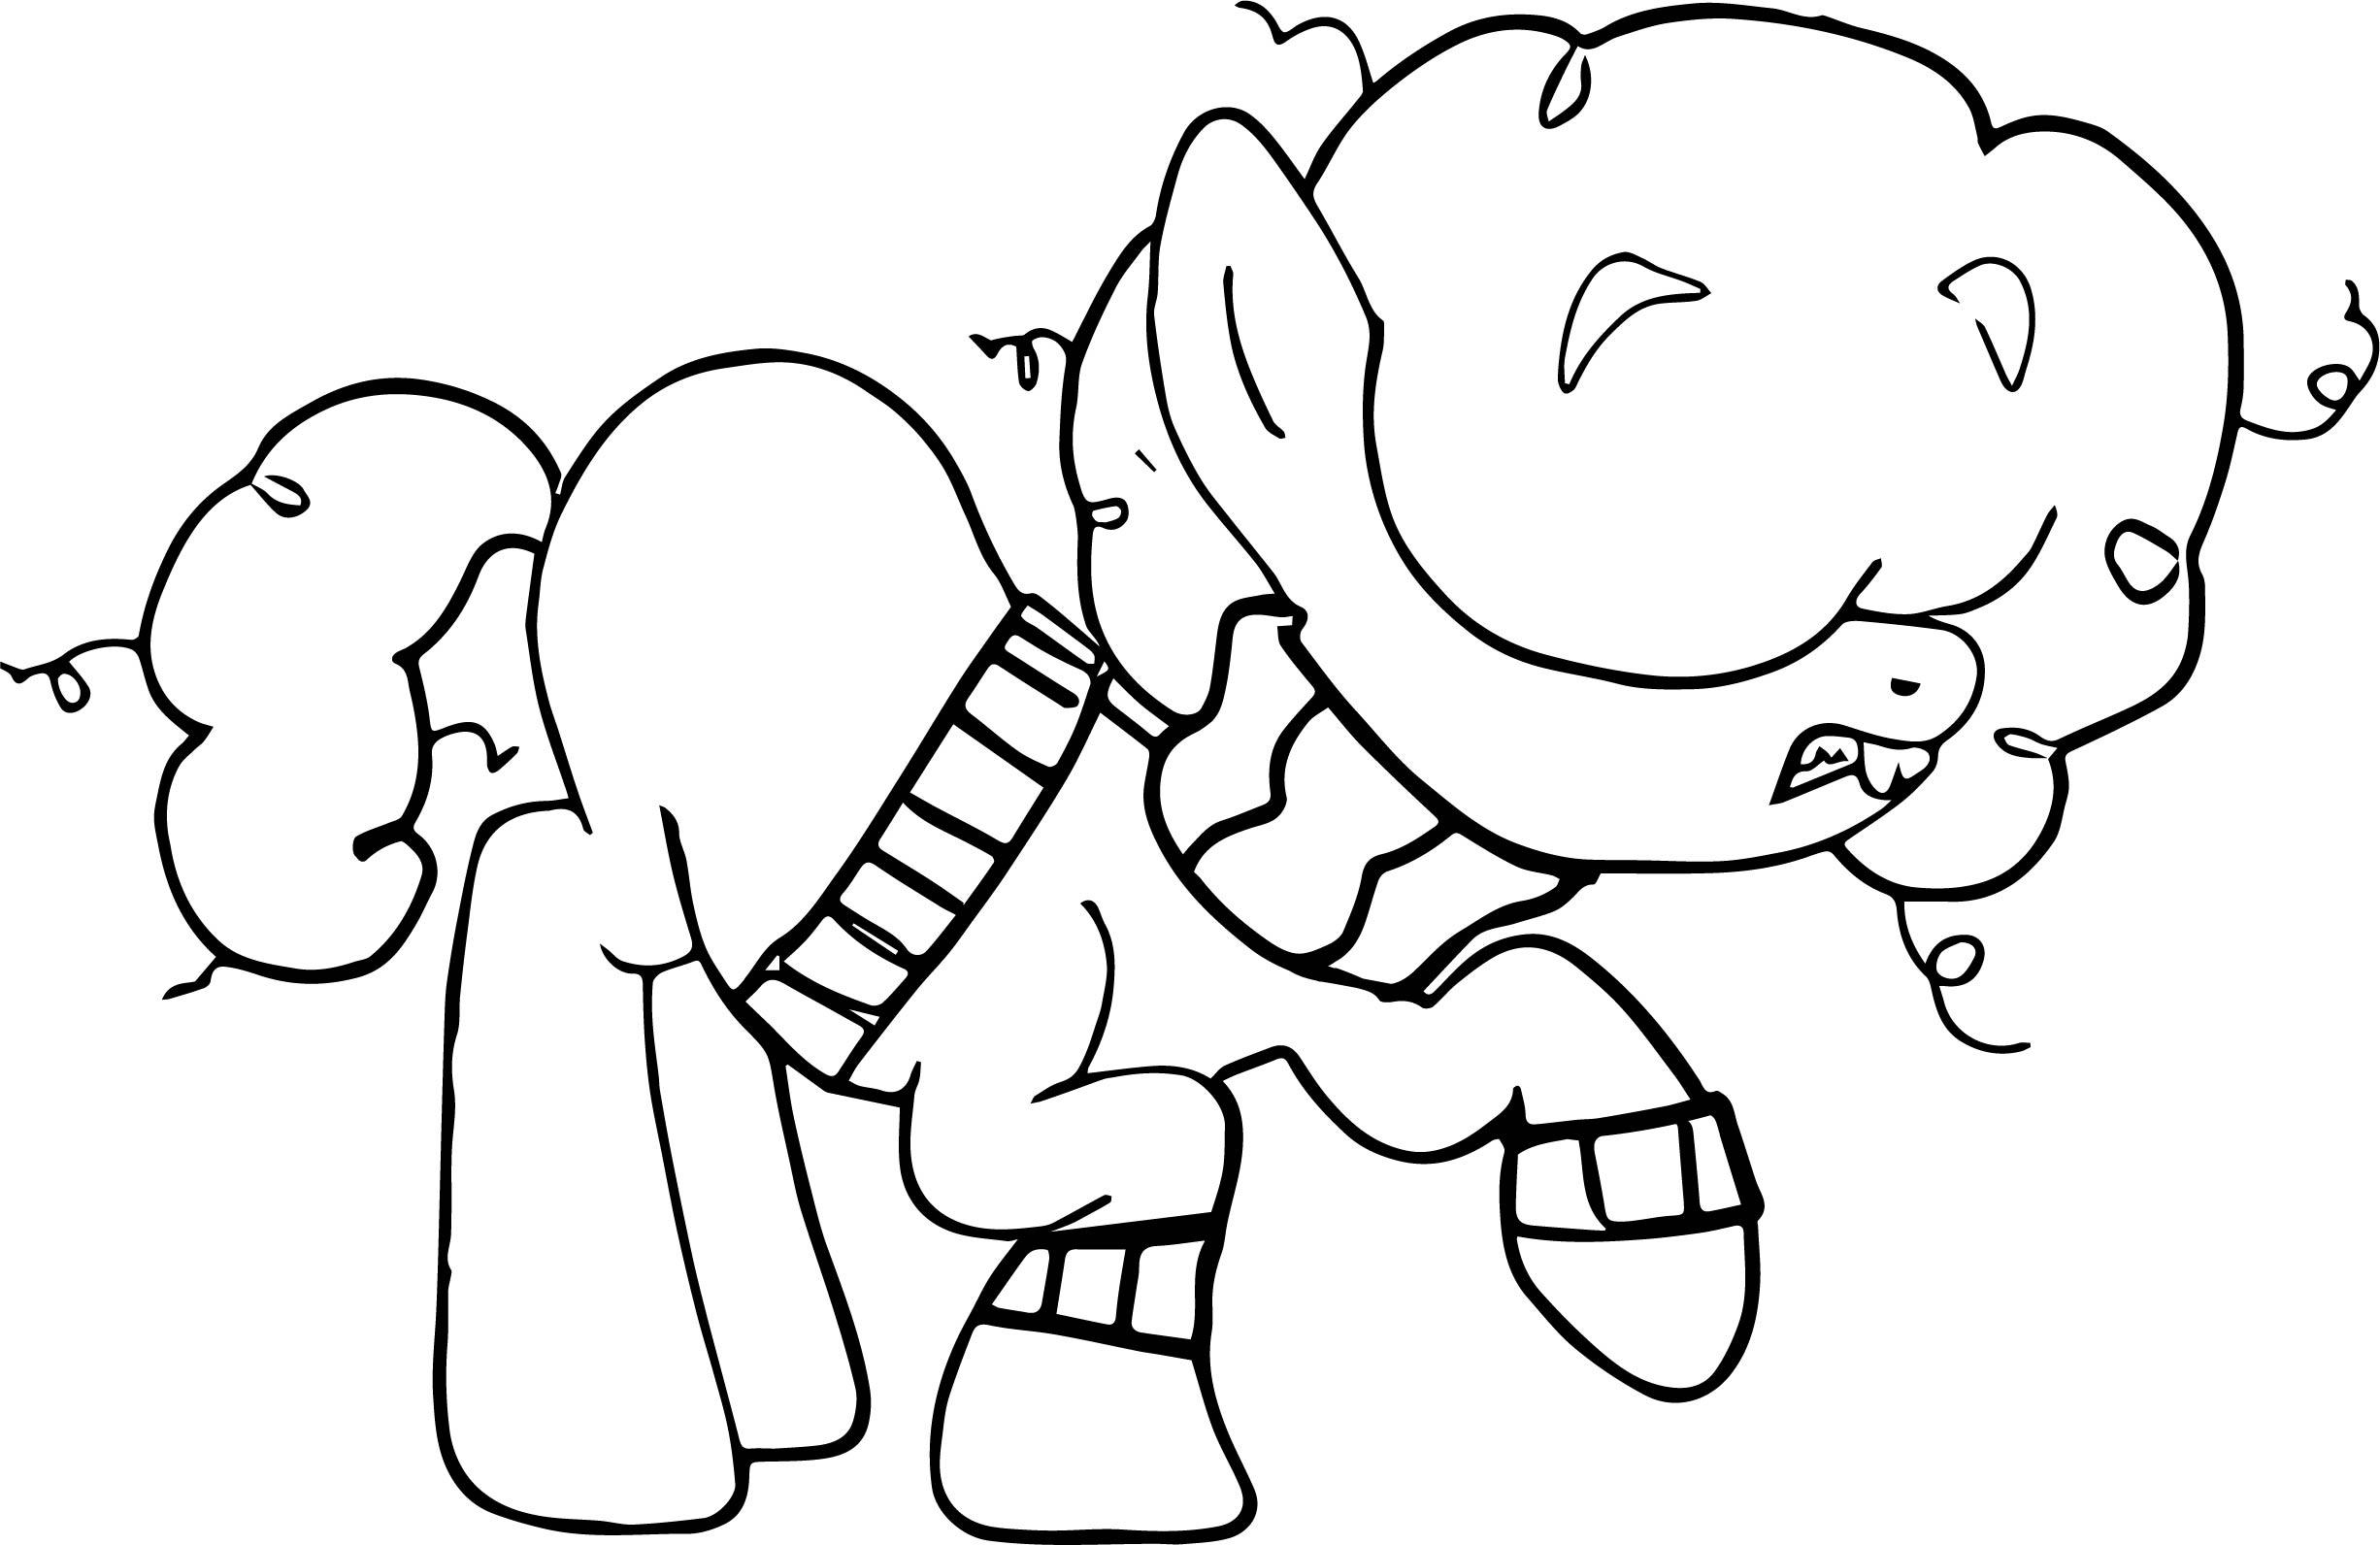 Roach As A Pony Rainbow Coloring Page | Wecoloringpage.com